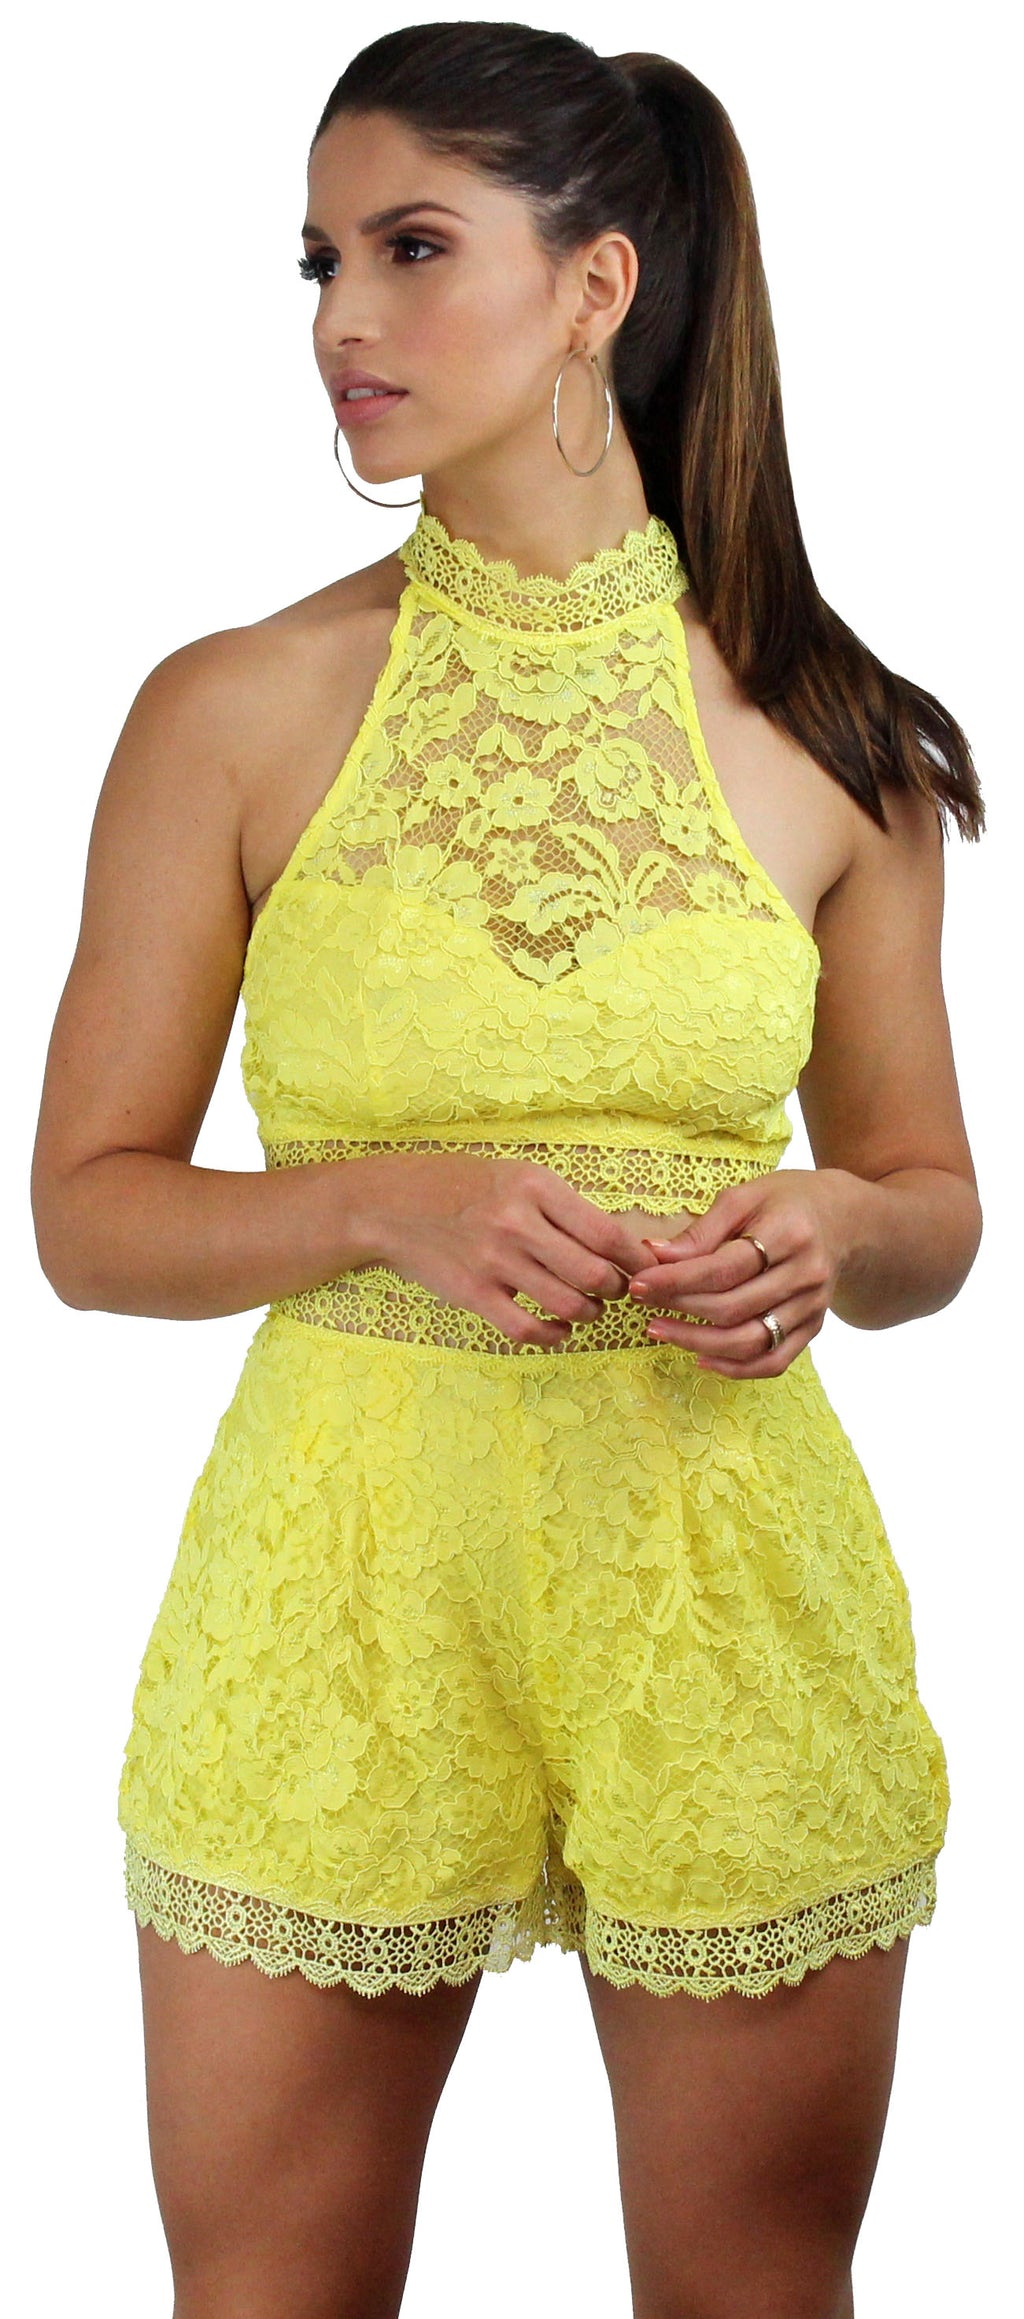 Accompany Yellow Lace Two-Piece Set